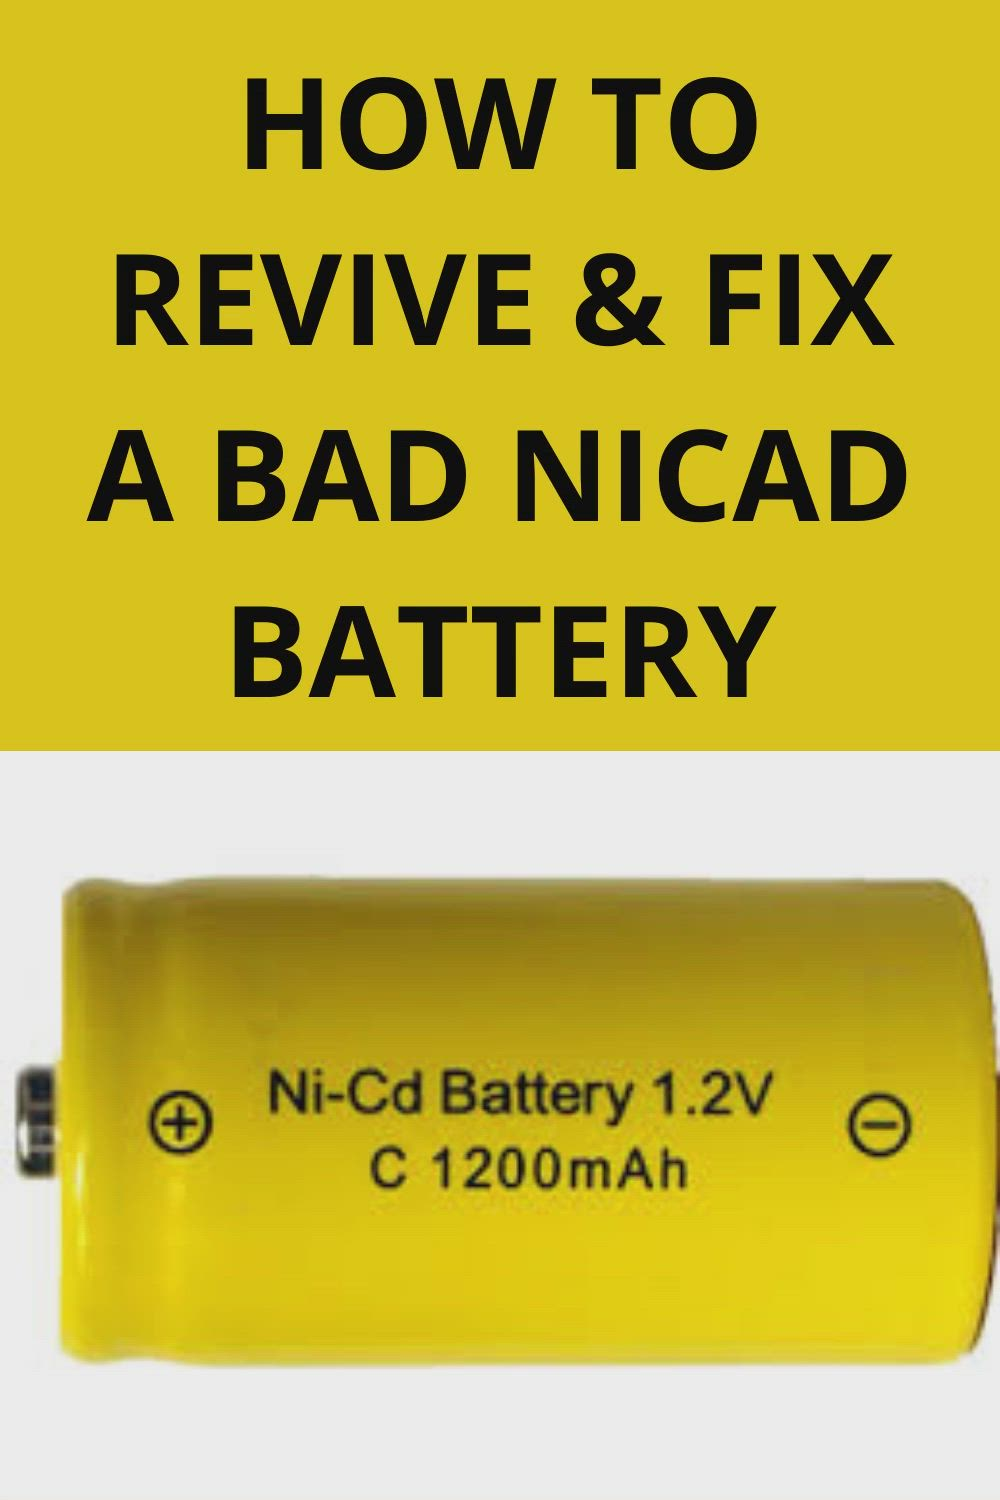 How To Revive Fix A Bad Nicad Battery Video In 2021 Battery Revival Bad